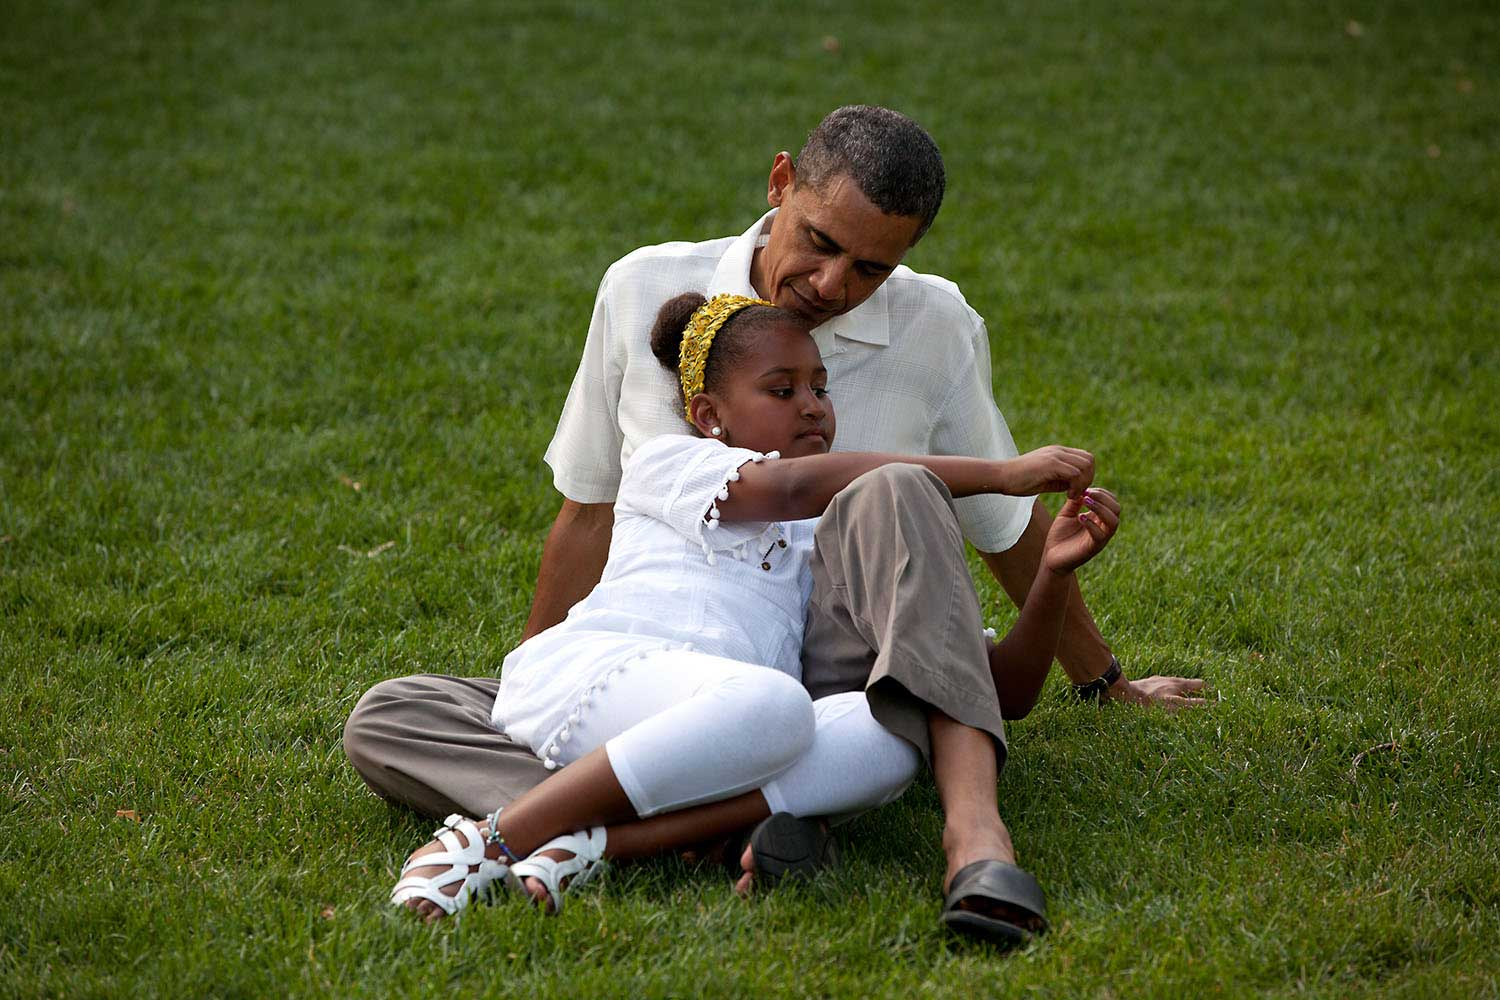 President Obama shares a moment with his daughter Sasha during a barbecue in celebration of his 49th birthday on the South Lawn of the White House, Aug. 8, 2010.